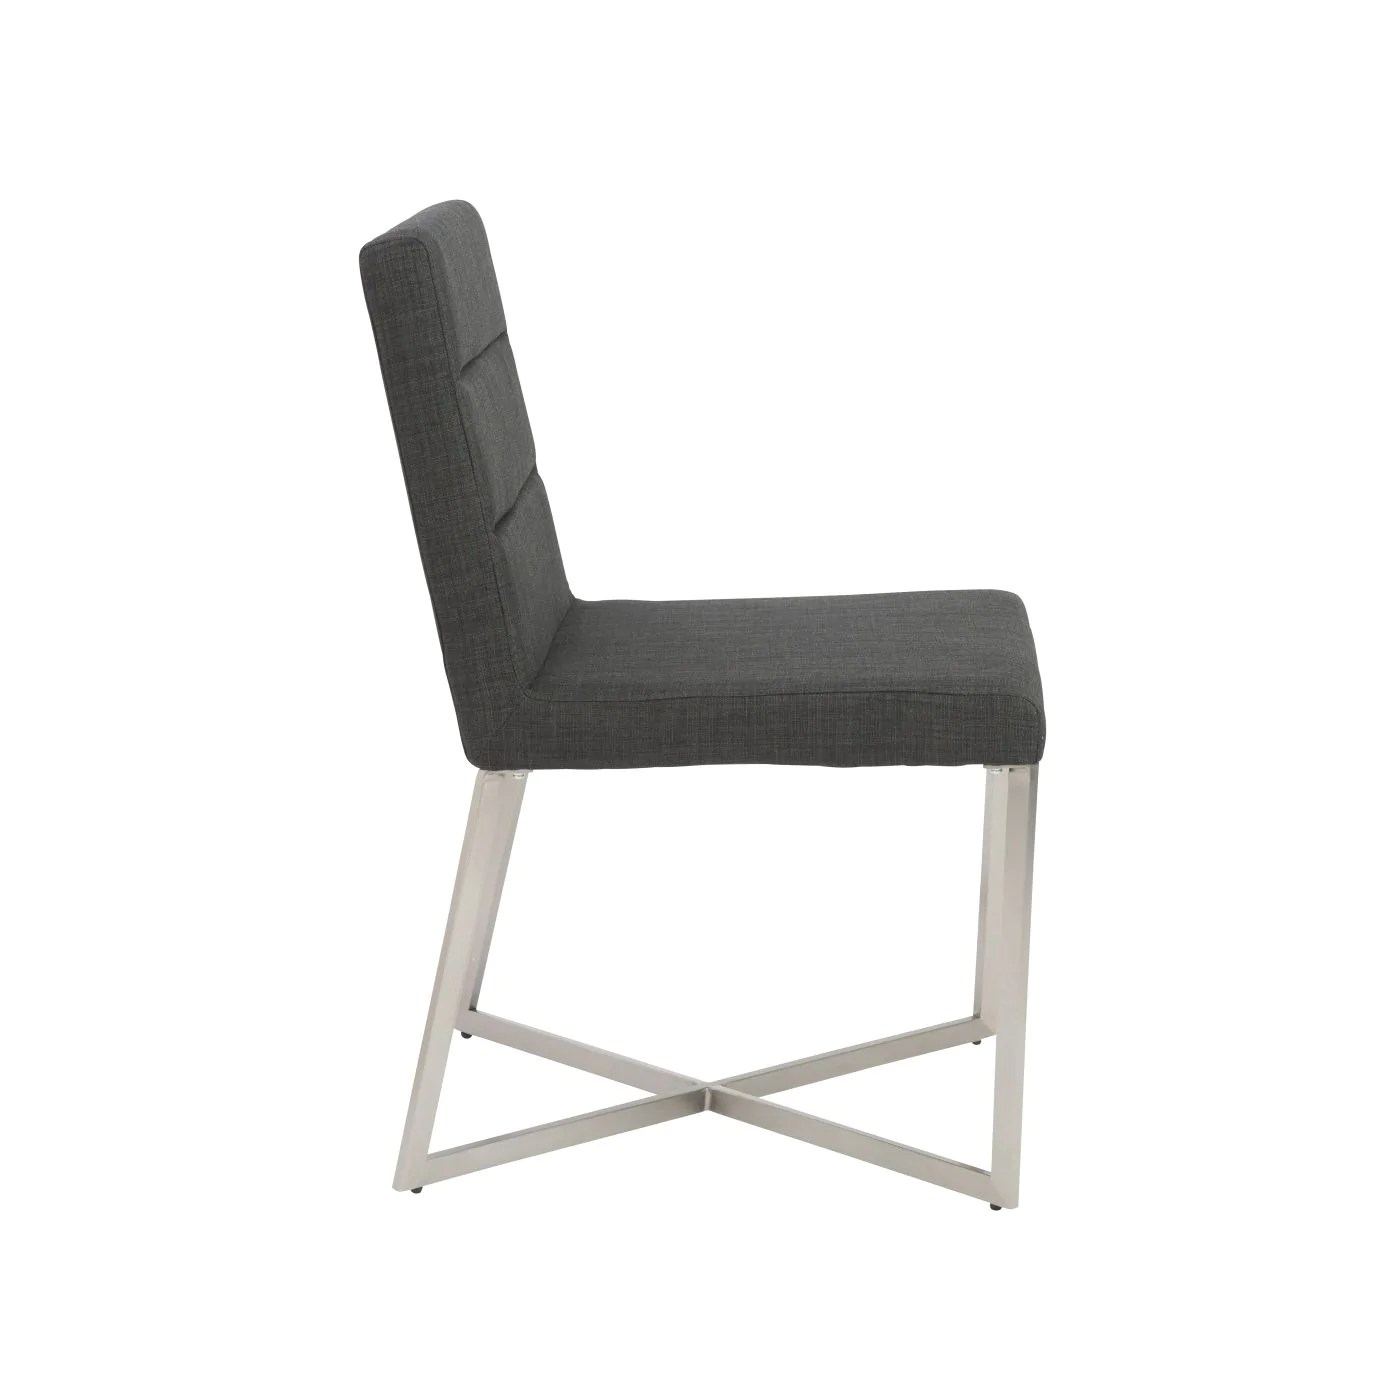 dining chairs with stainless steel legs danish for sale euro style 38619char tosca chair in charcoal